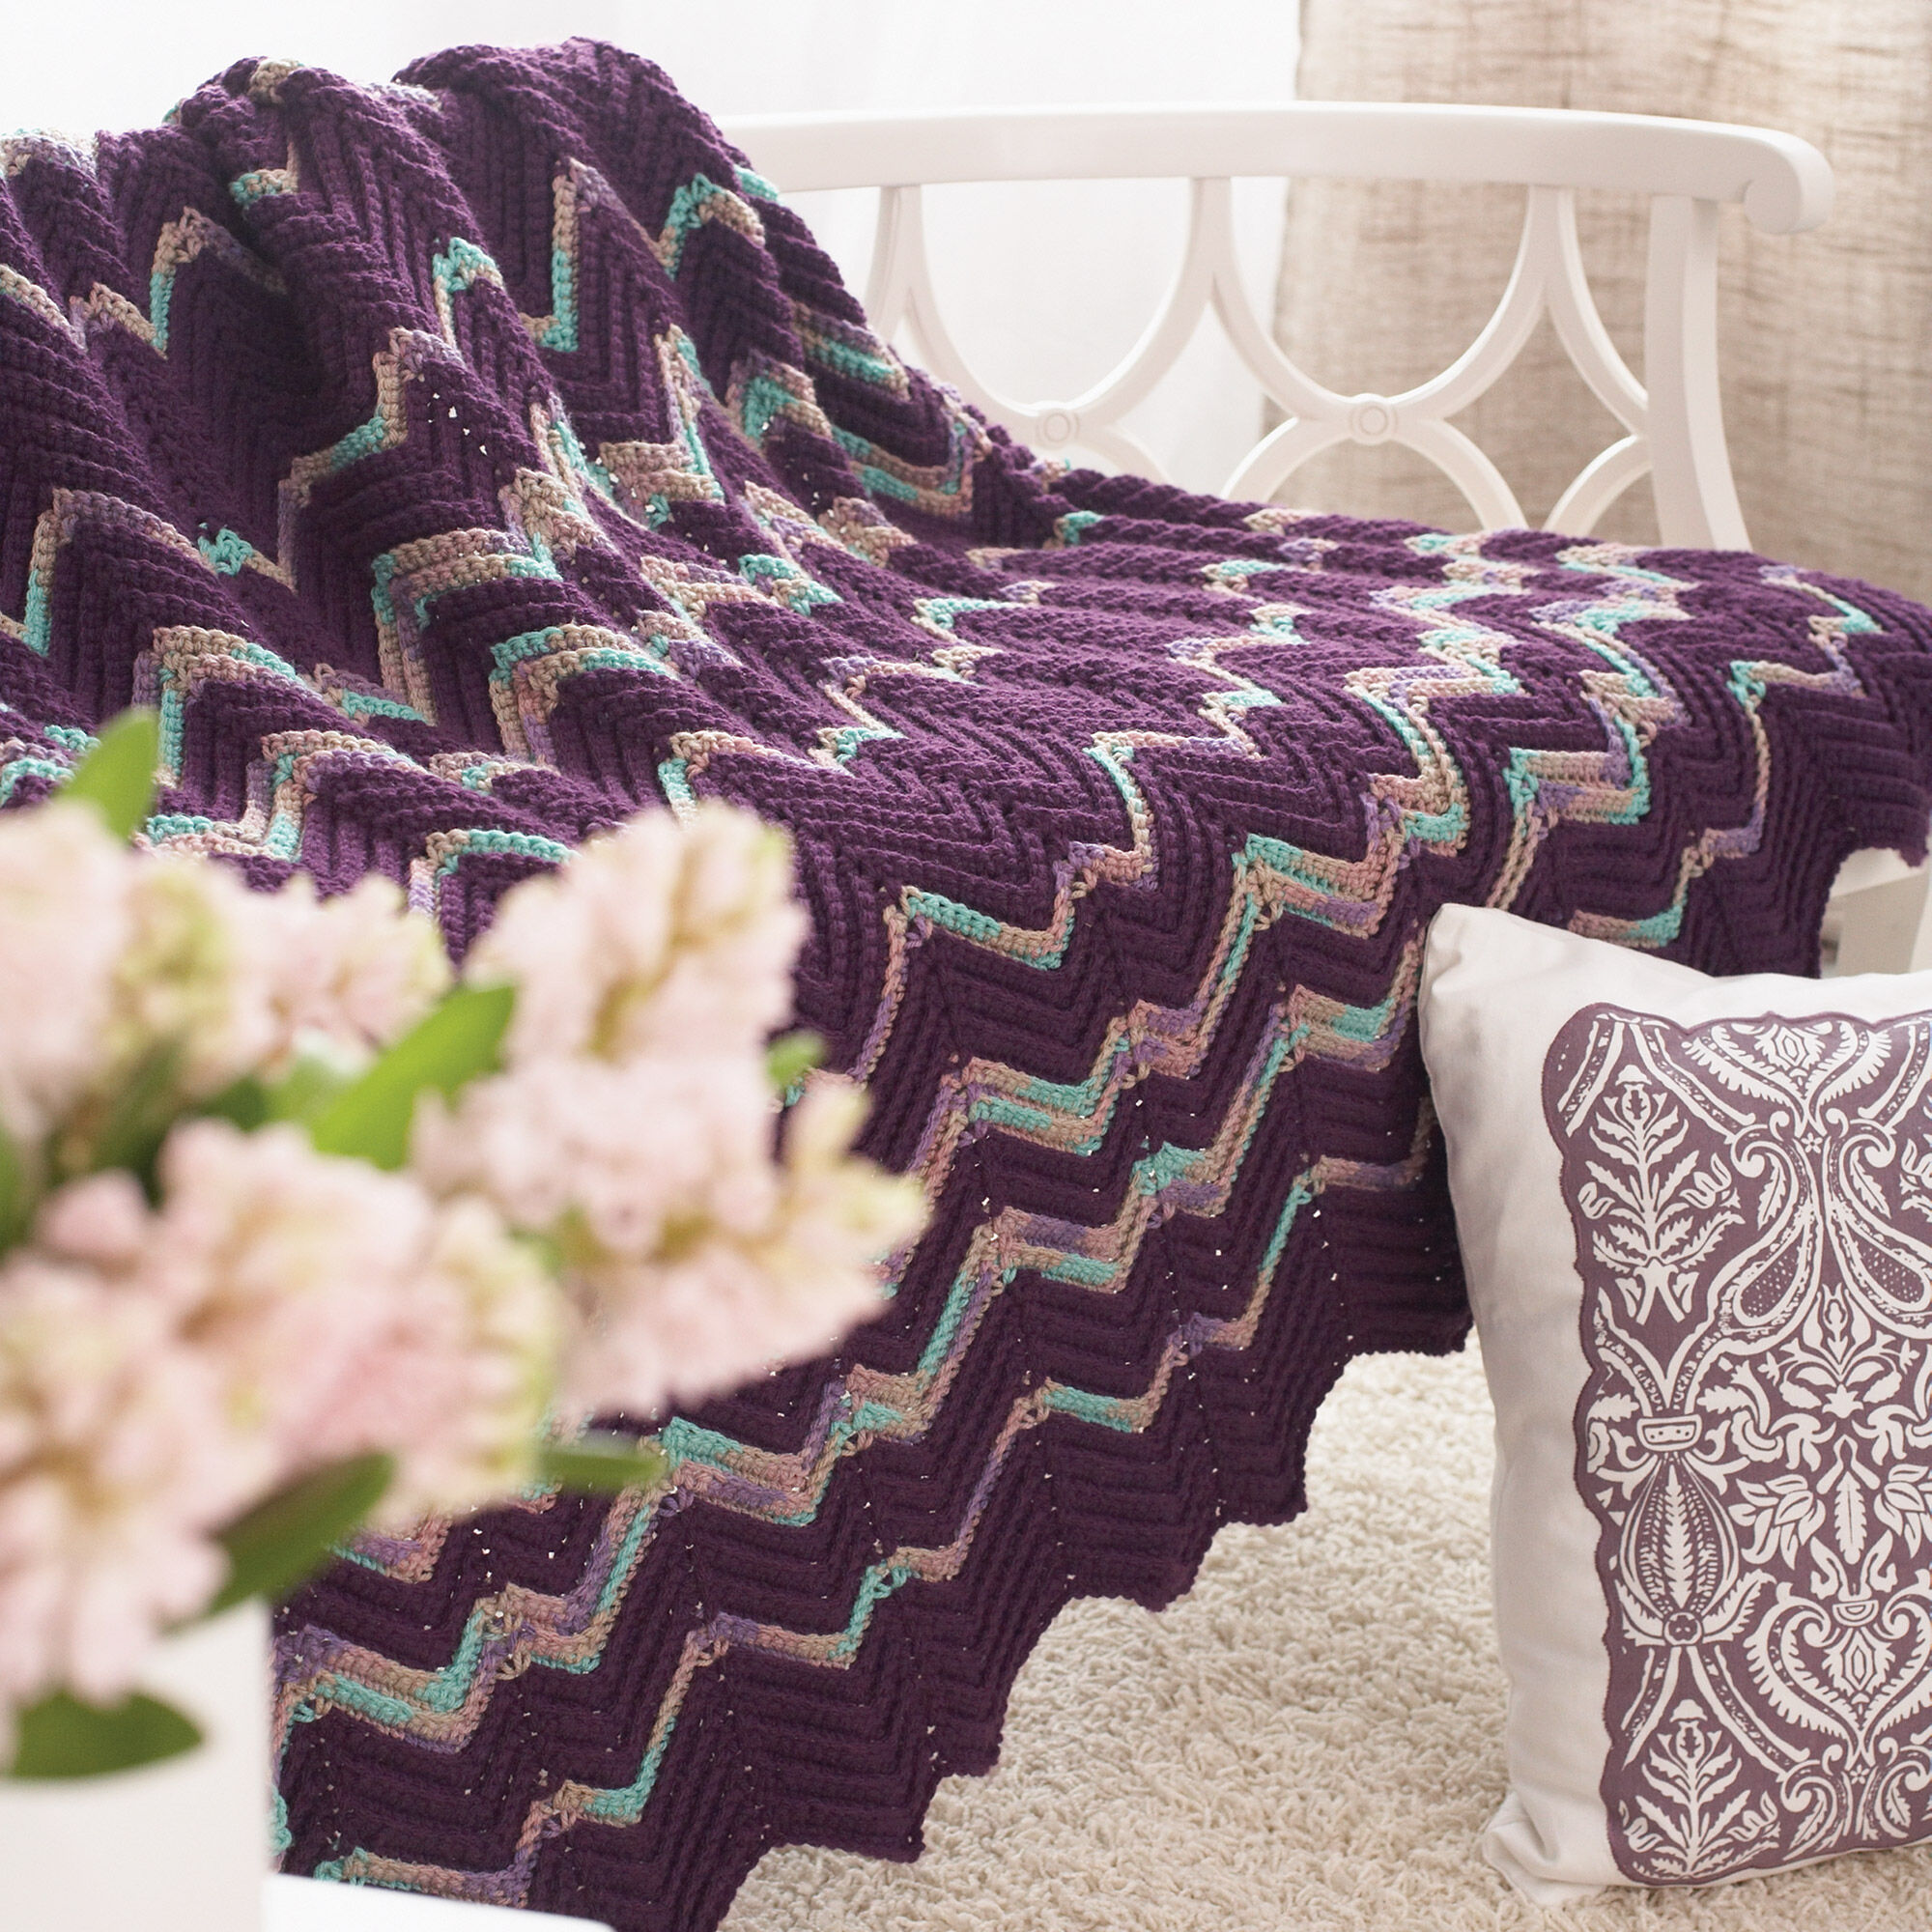 Ripple Afghan Crochet Pattern Simple Design Inspiration